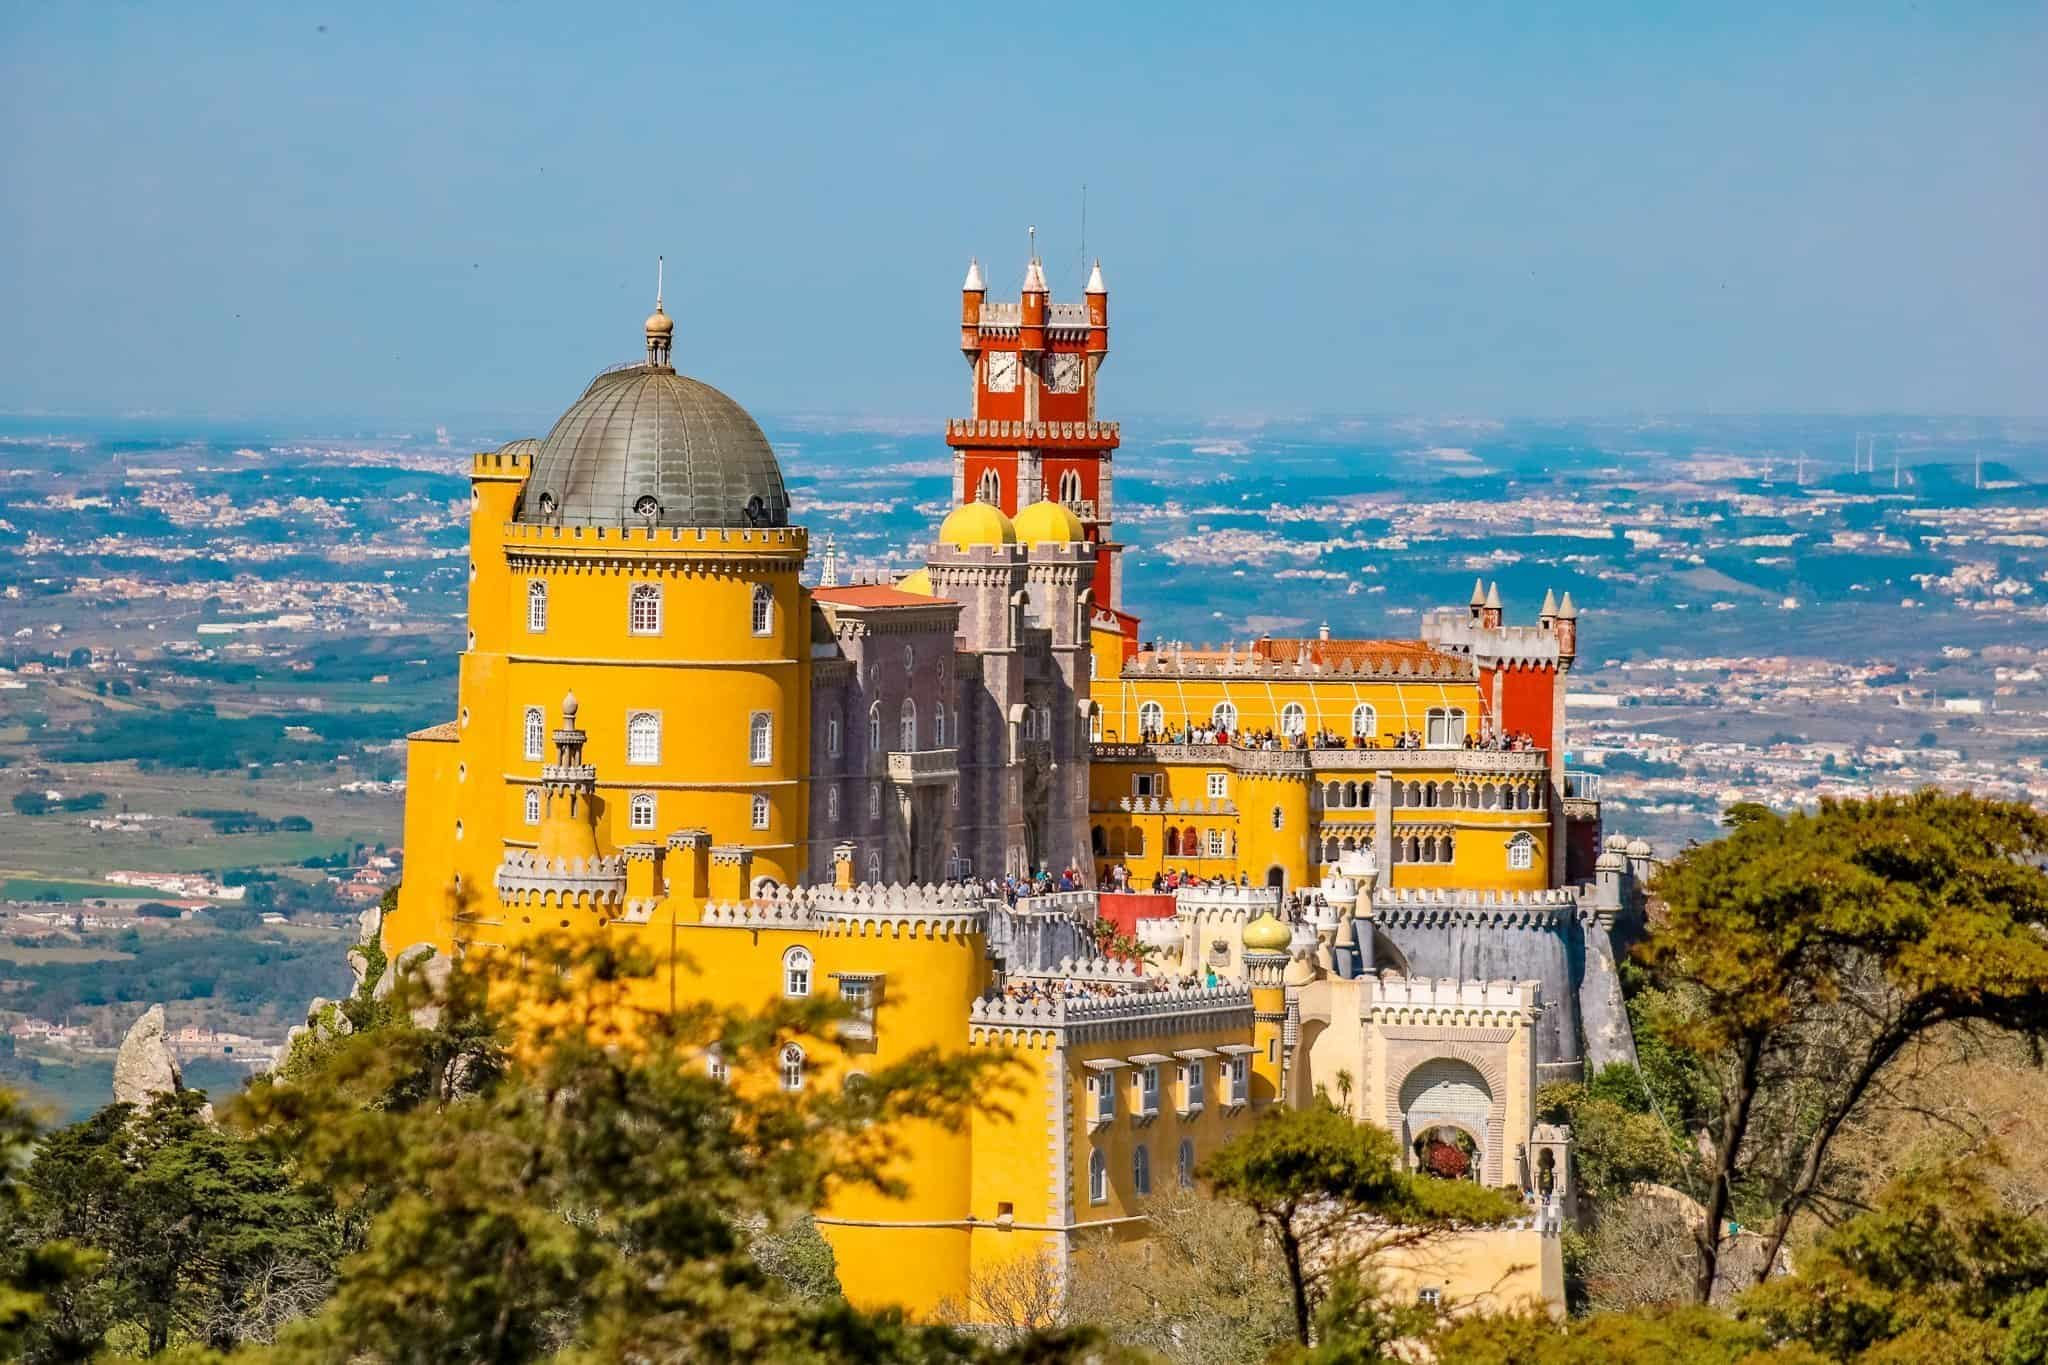 A Sintra Day Trip View of Pena Palace